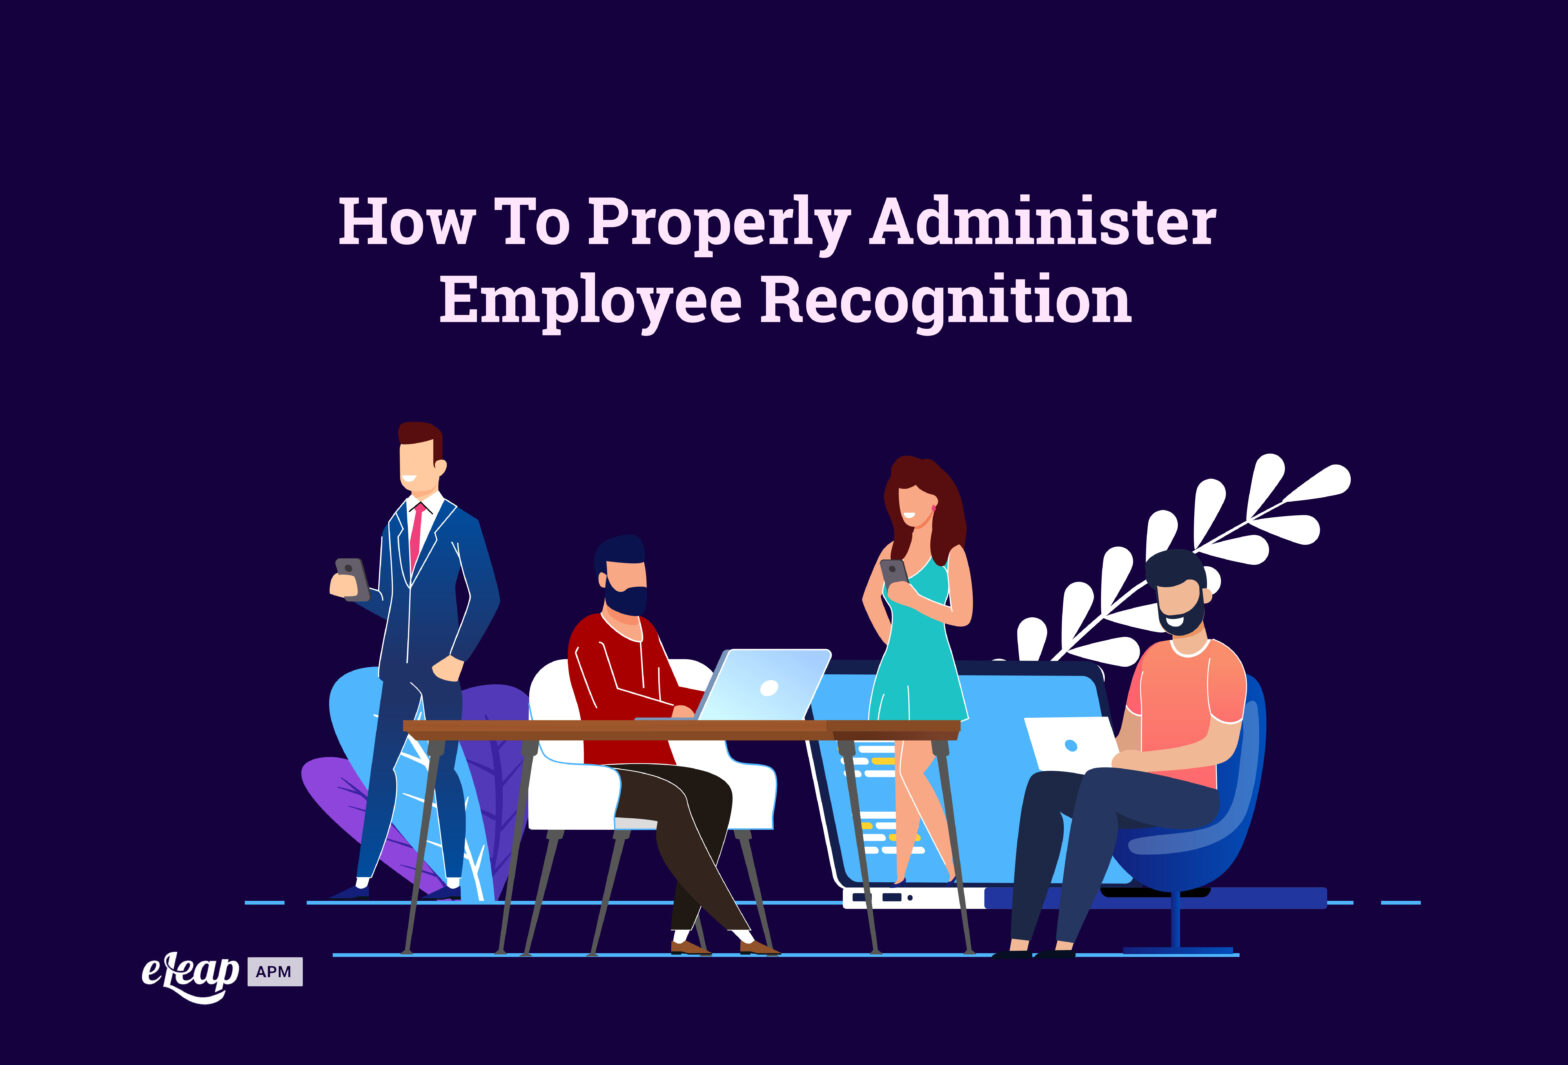 How To Properly Administer Employee Recognition